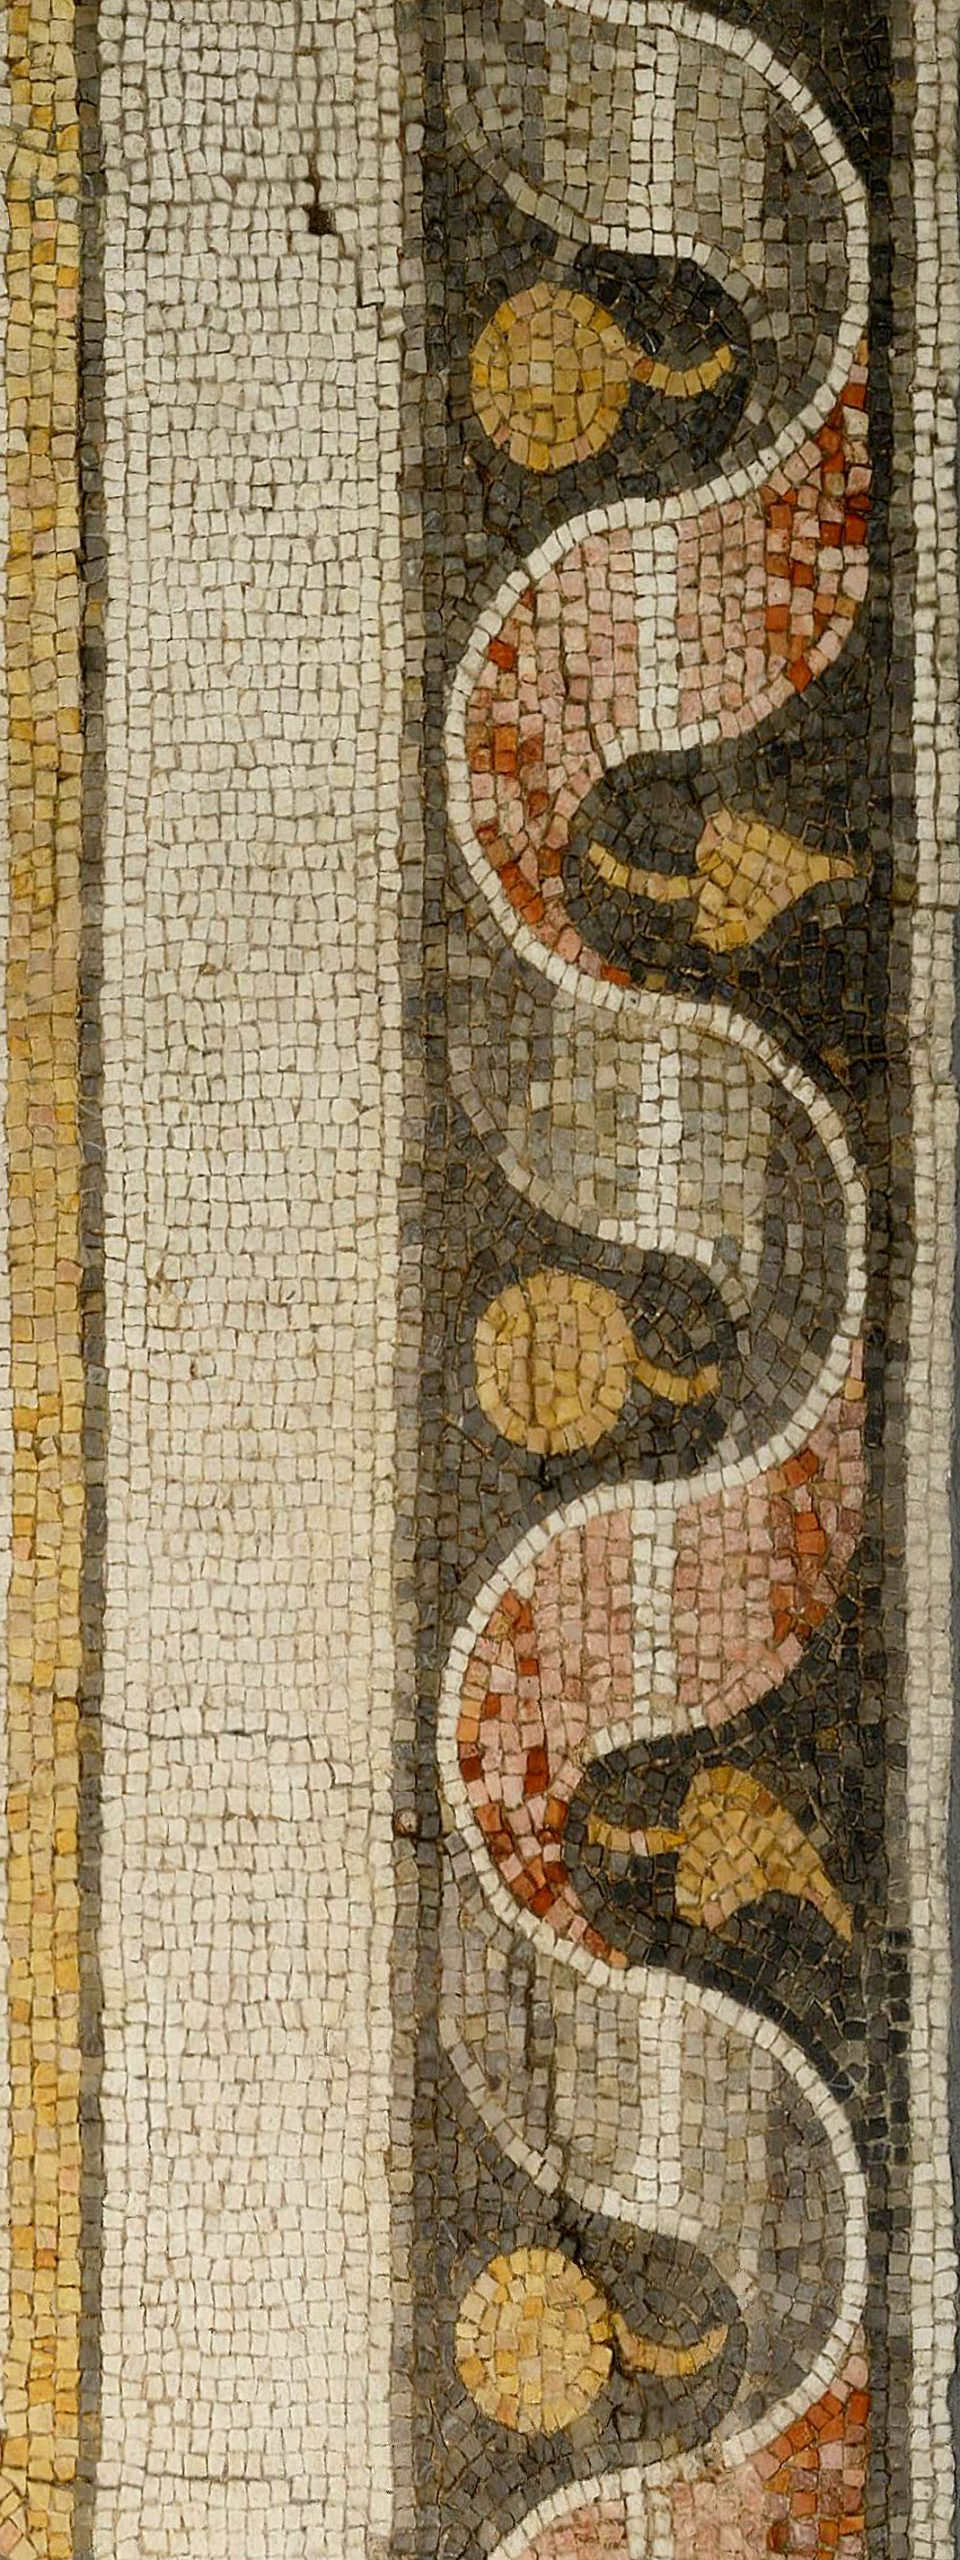 Roman, Antioch, Mosaic fragment from The House of Ge and the Seasons (detail), c. AD 200 — 300, Stone Tesserae, Museum purchase, Museum of Fine Arts, St. Petersburg